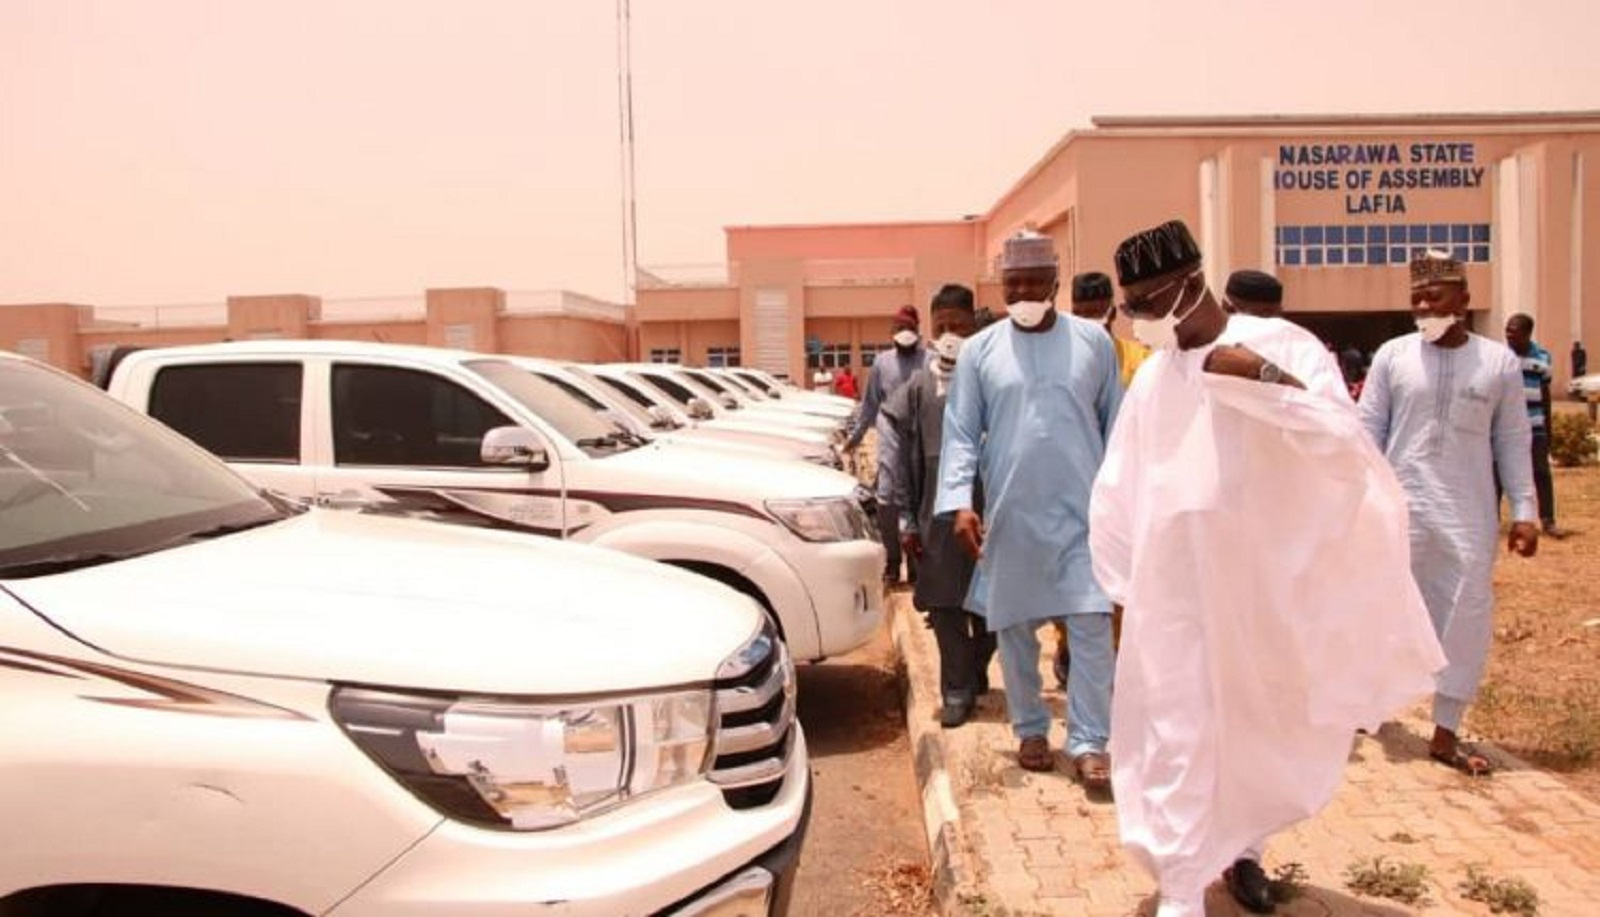 Nassara governor buys N504m car to lwamakers